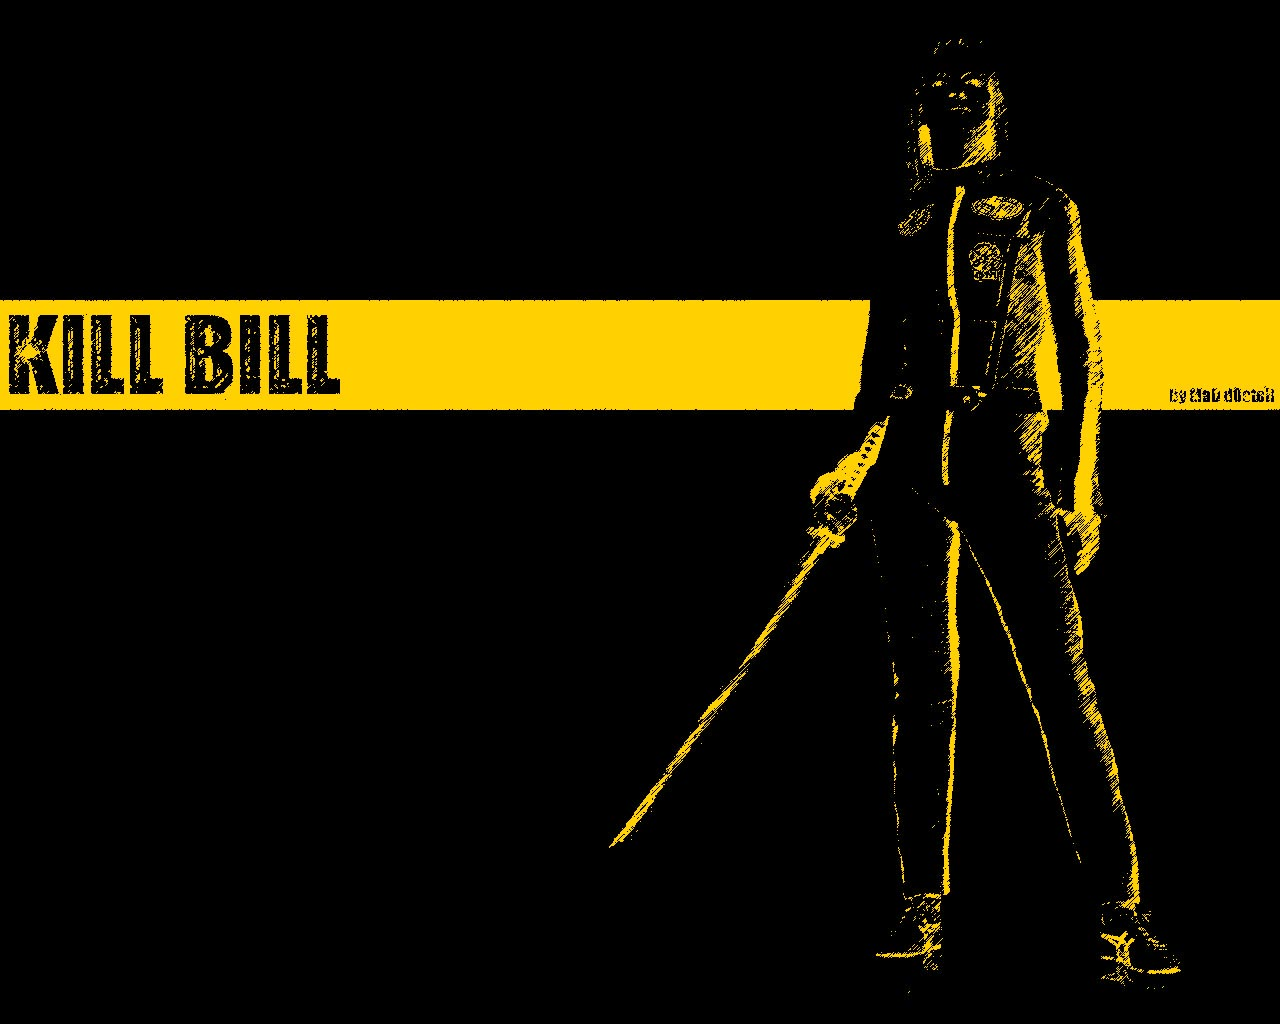 download movie killbill wallpaper -#main